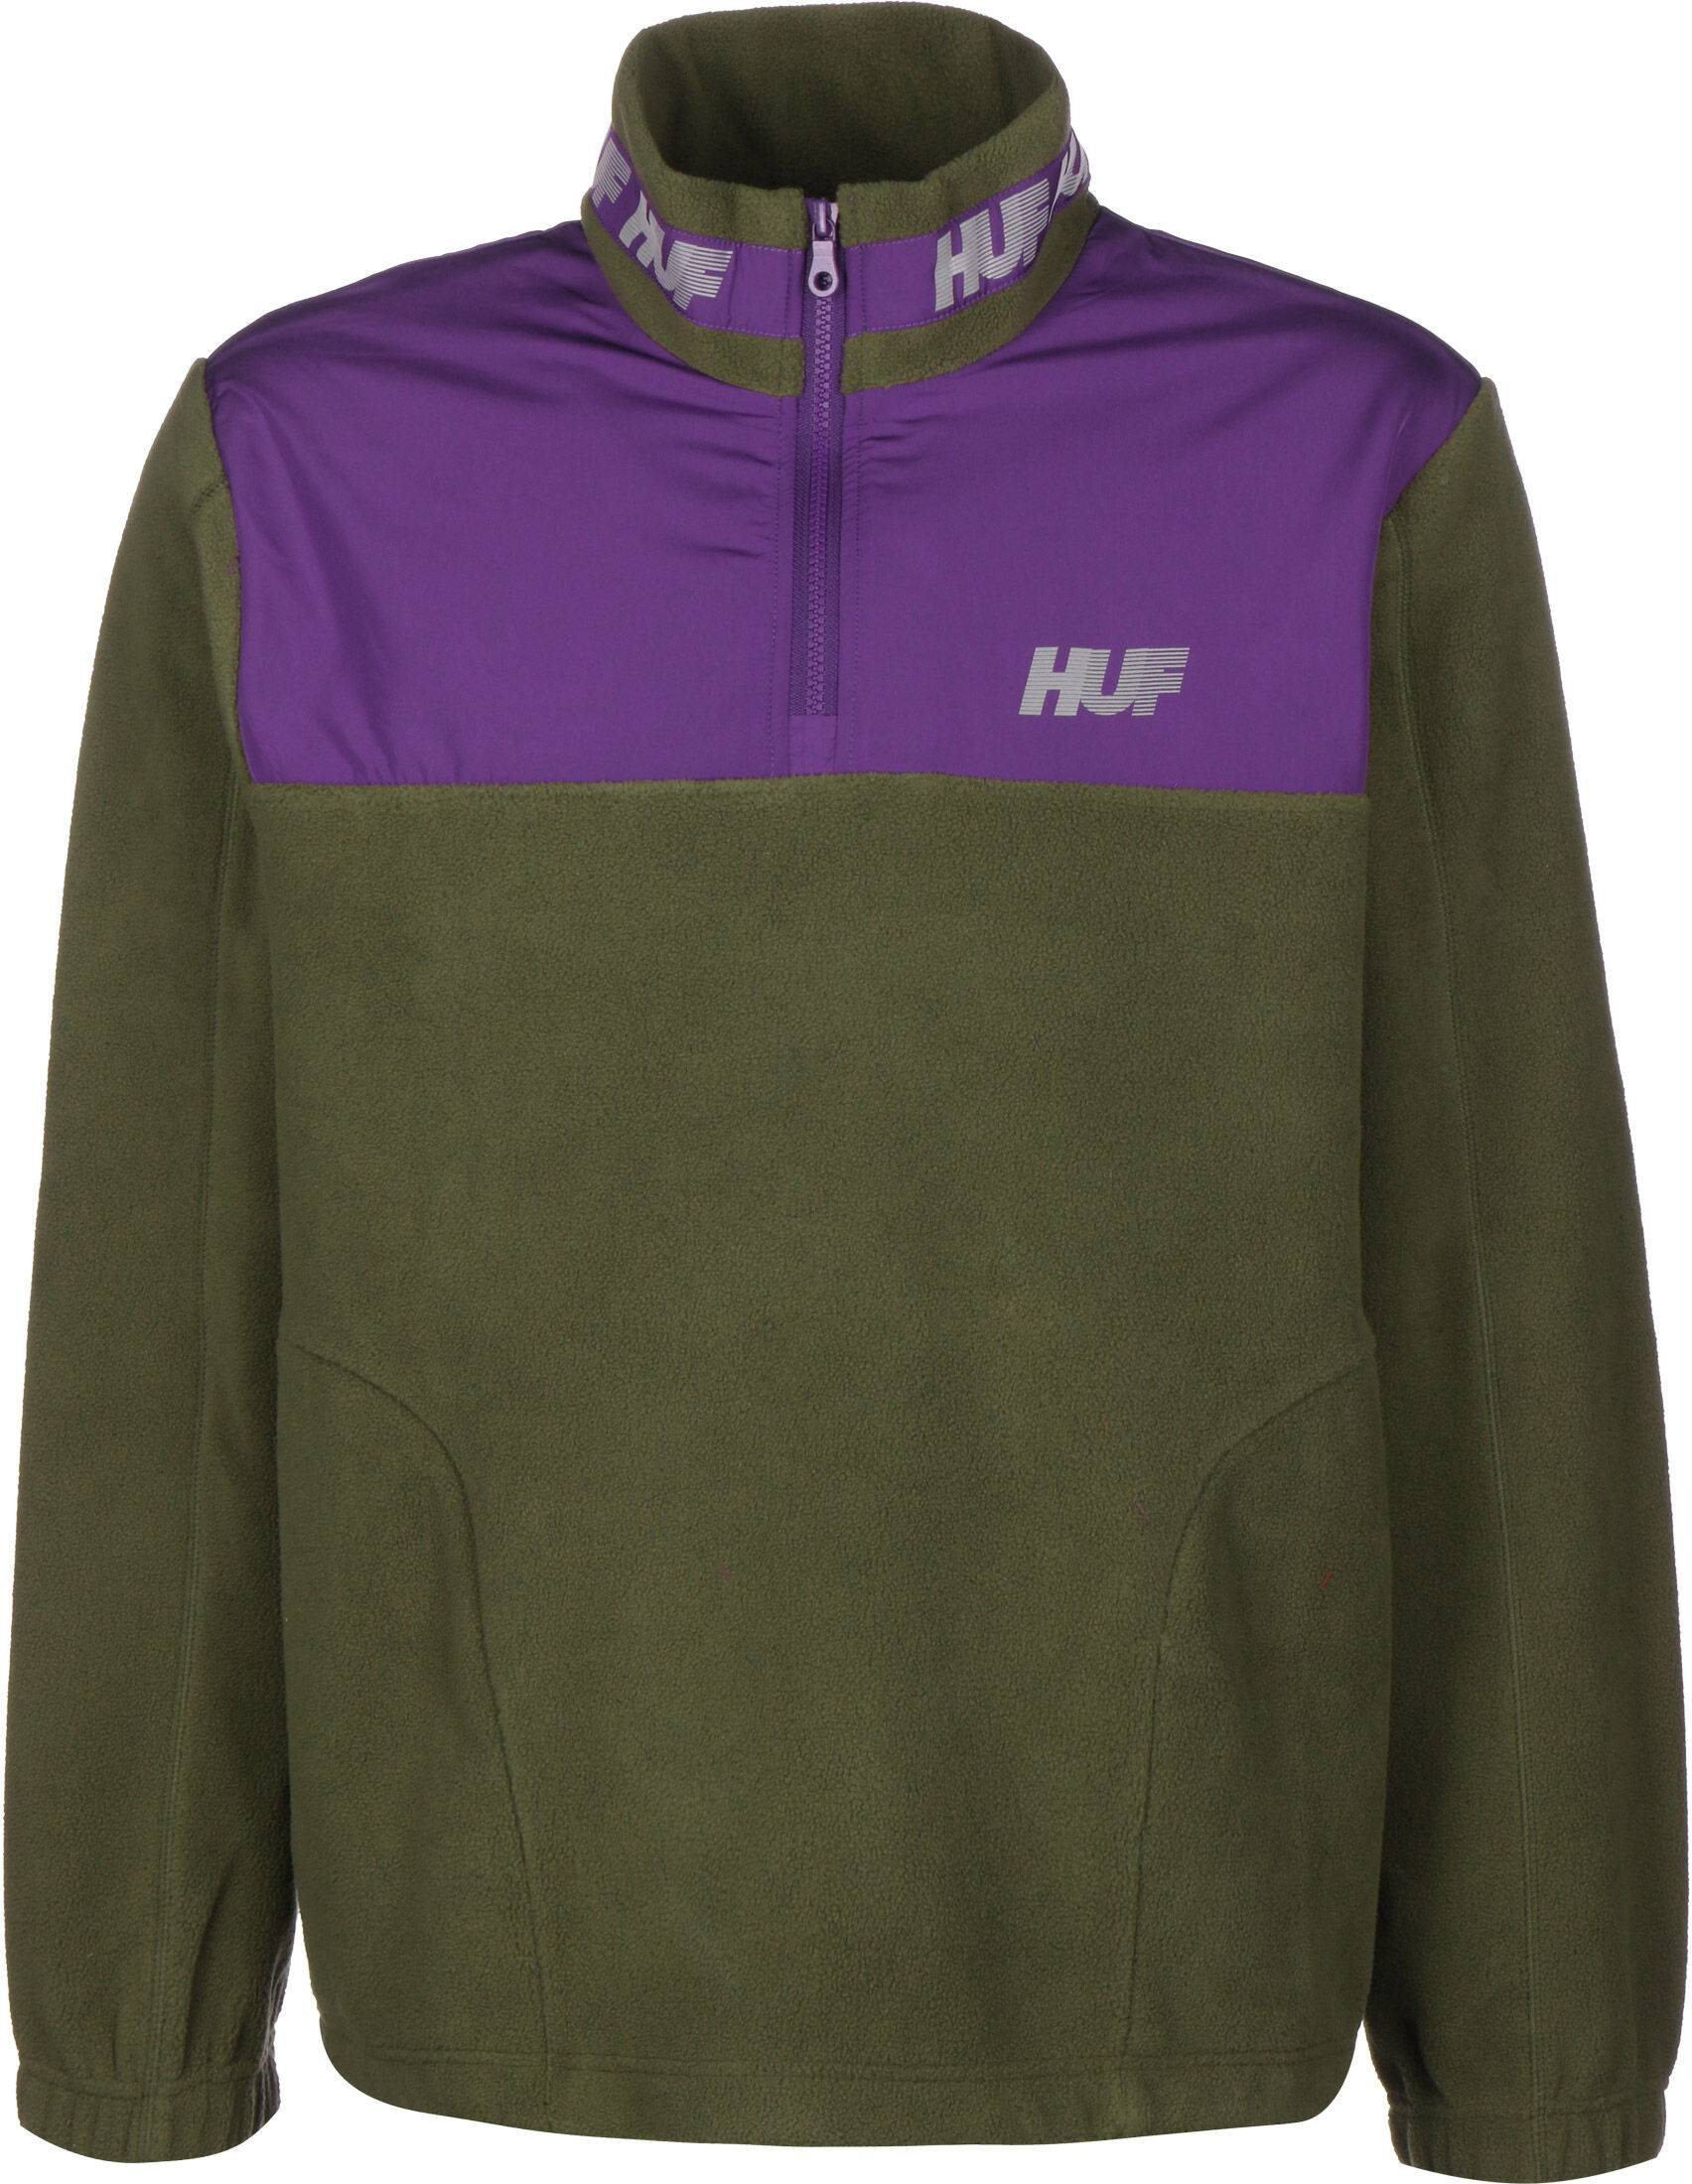 HUF 10K, taille S, homme, olive